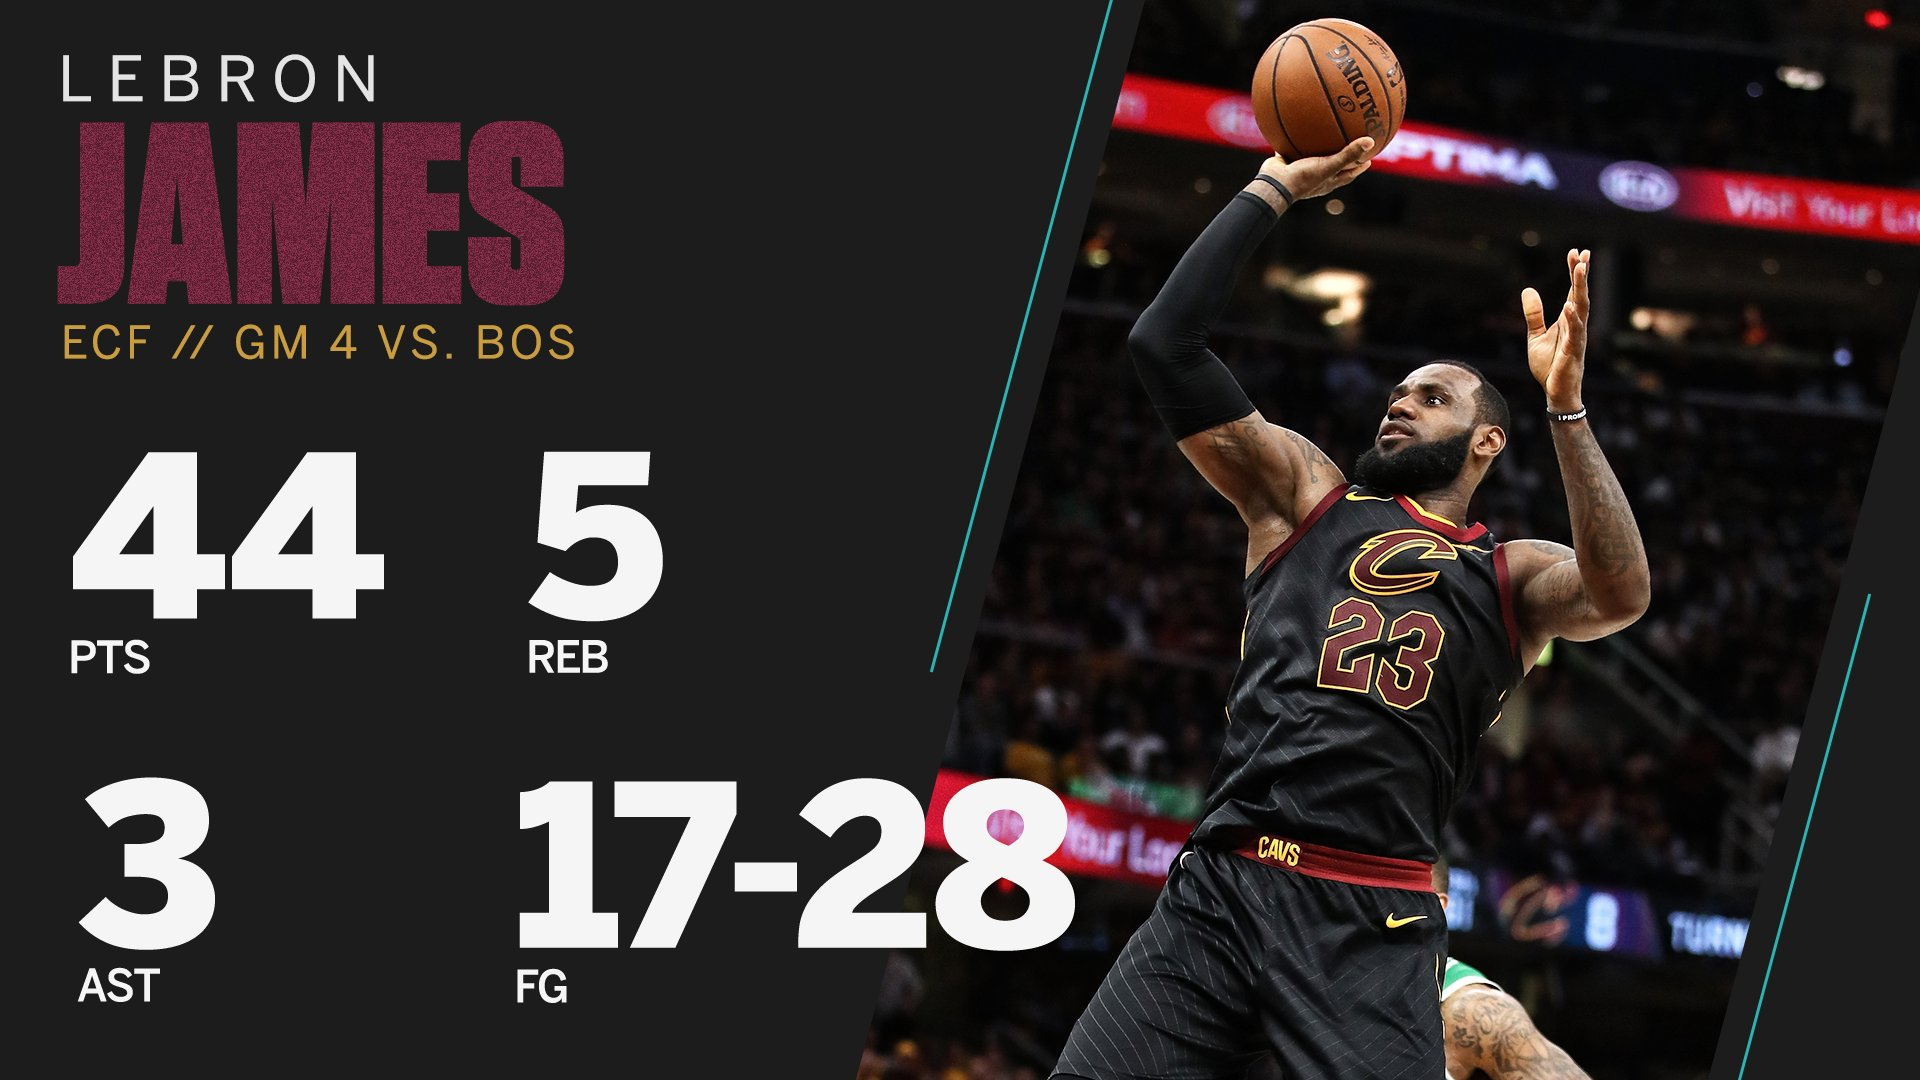 LeBron couldn't be stopped. https://t.co/t3B80jnvy4